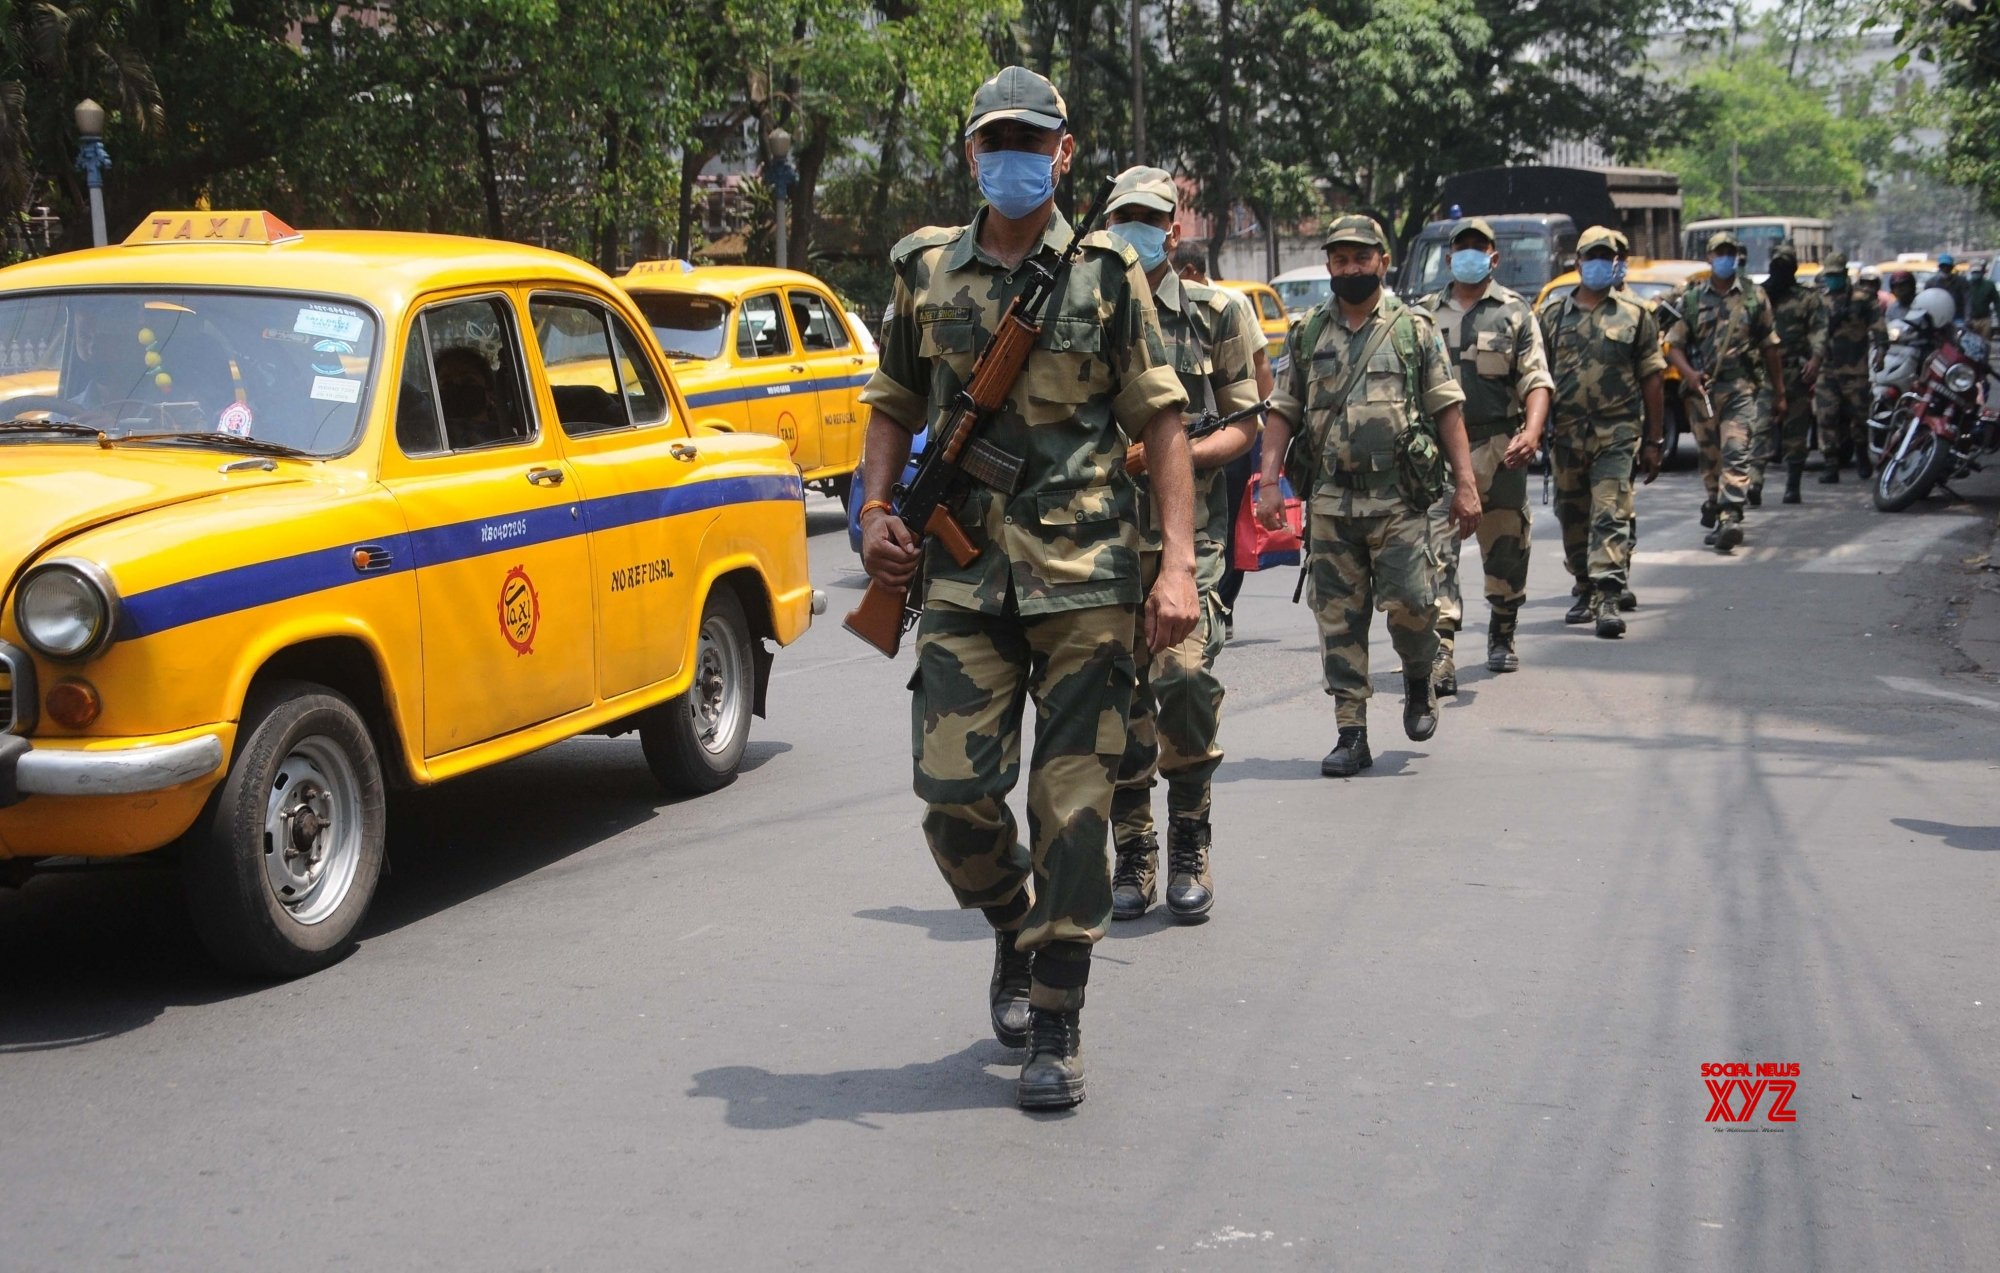 Kolkata:Paramilitary forces personnel conduct a route march ahead of the 4th phase of the State Assembly election in Kolkata. #Gallery